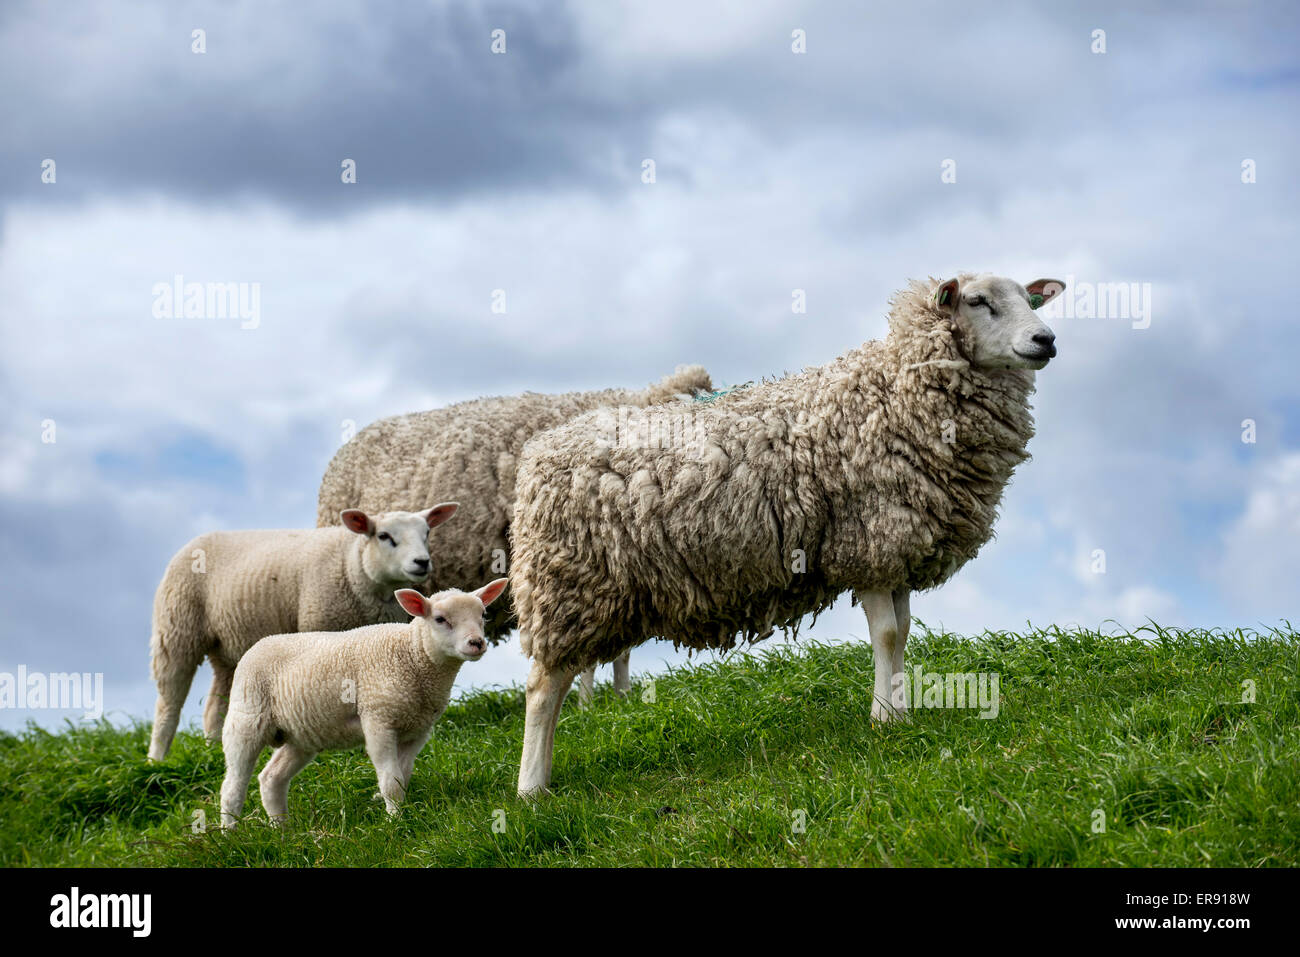 Texel sheep / Texelaar ewes with lambs in meadow on the island of Texel, West Frisian Islands, North Holland, the - Stock Image